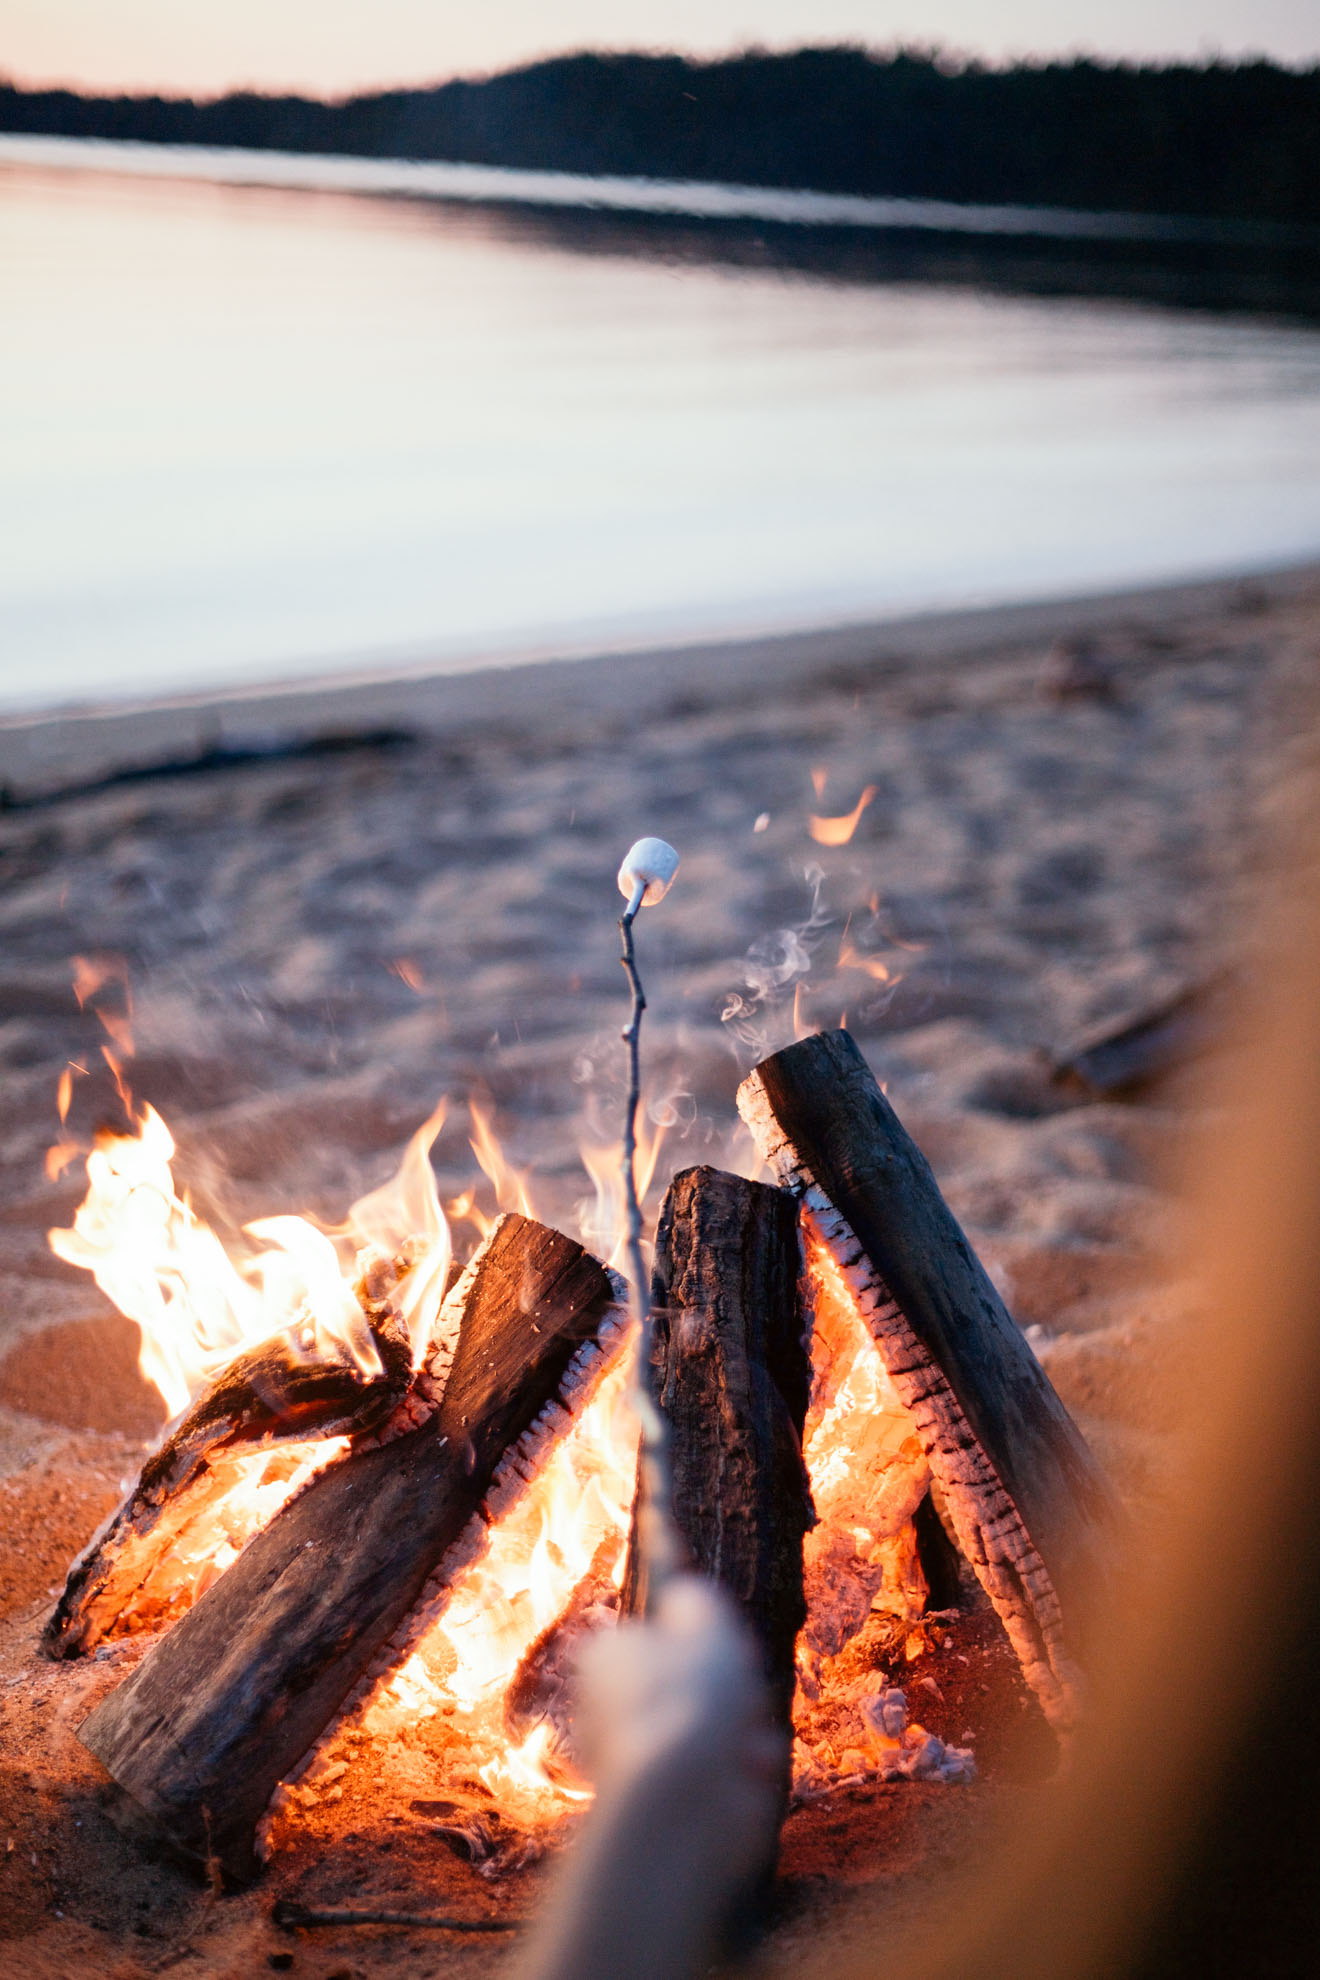 roasting marshmallows over a campfire on a beach miss northerner